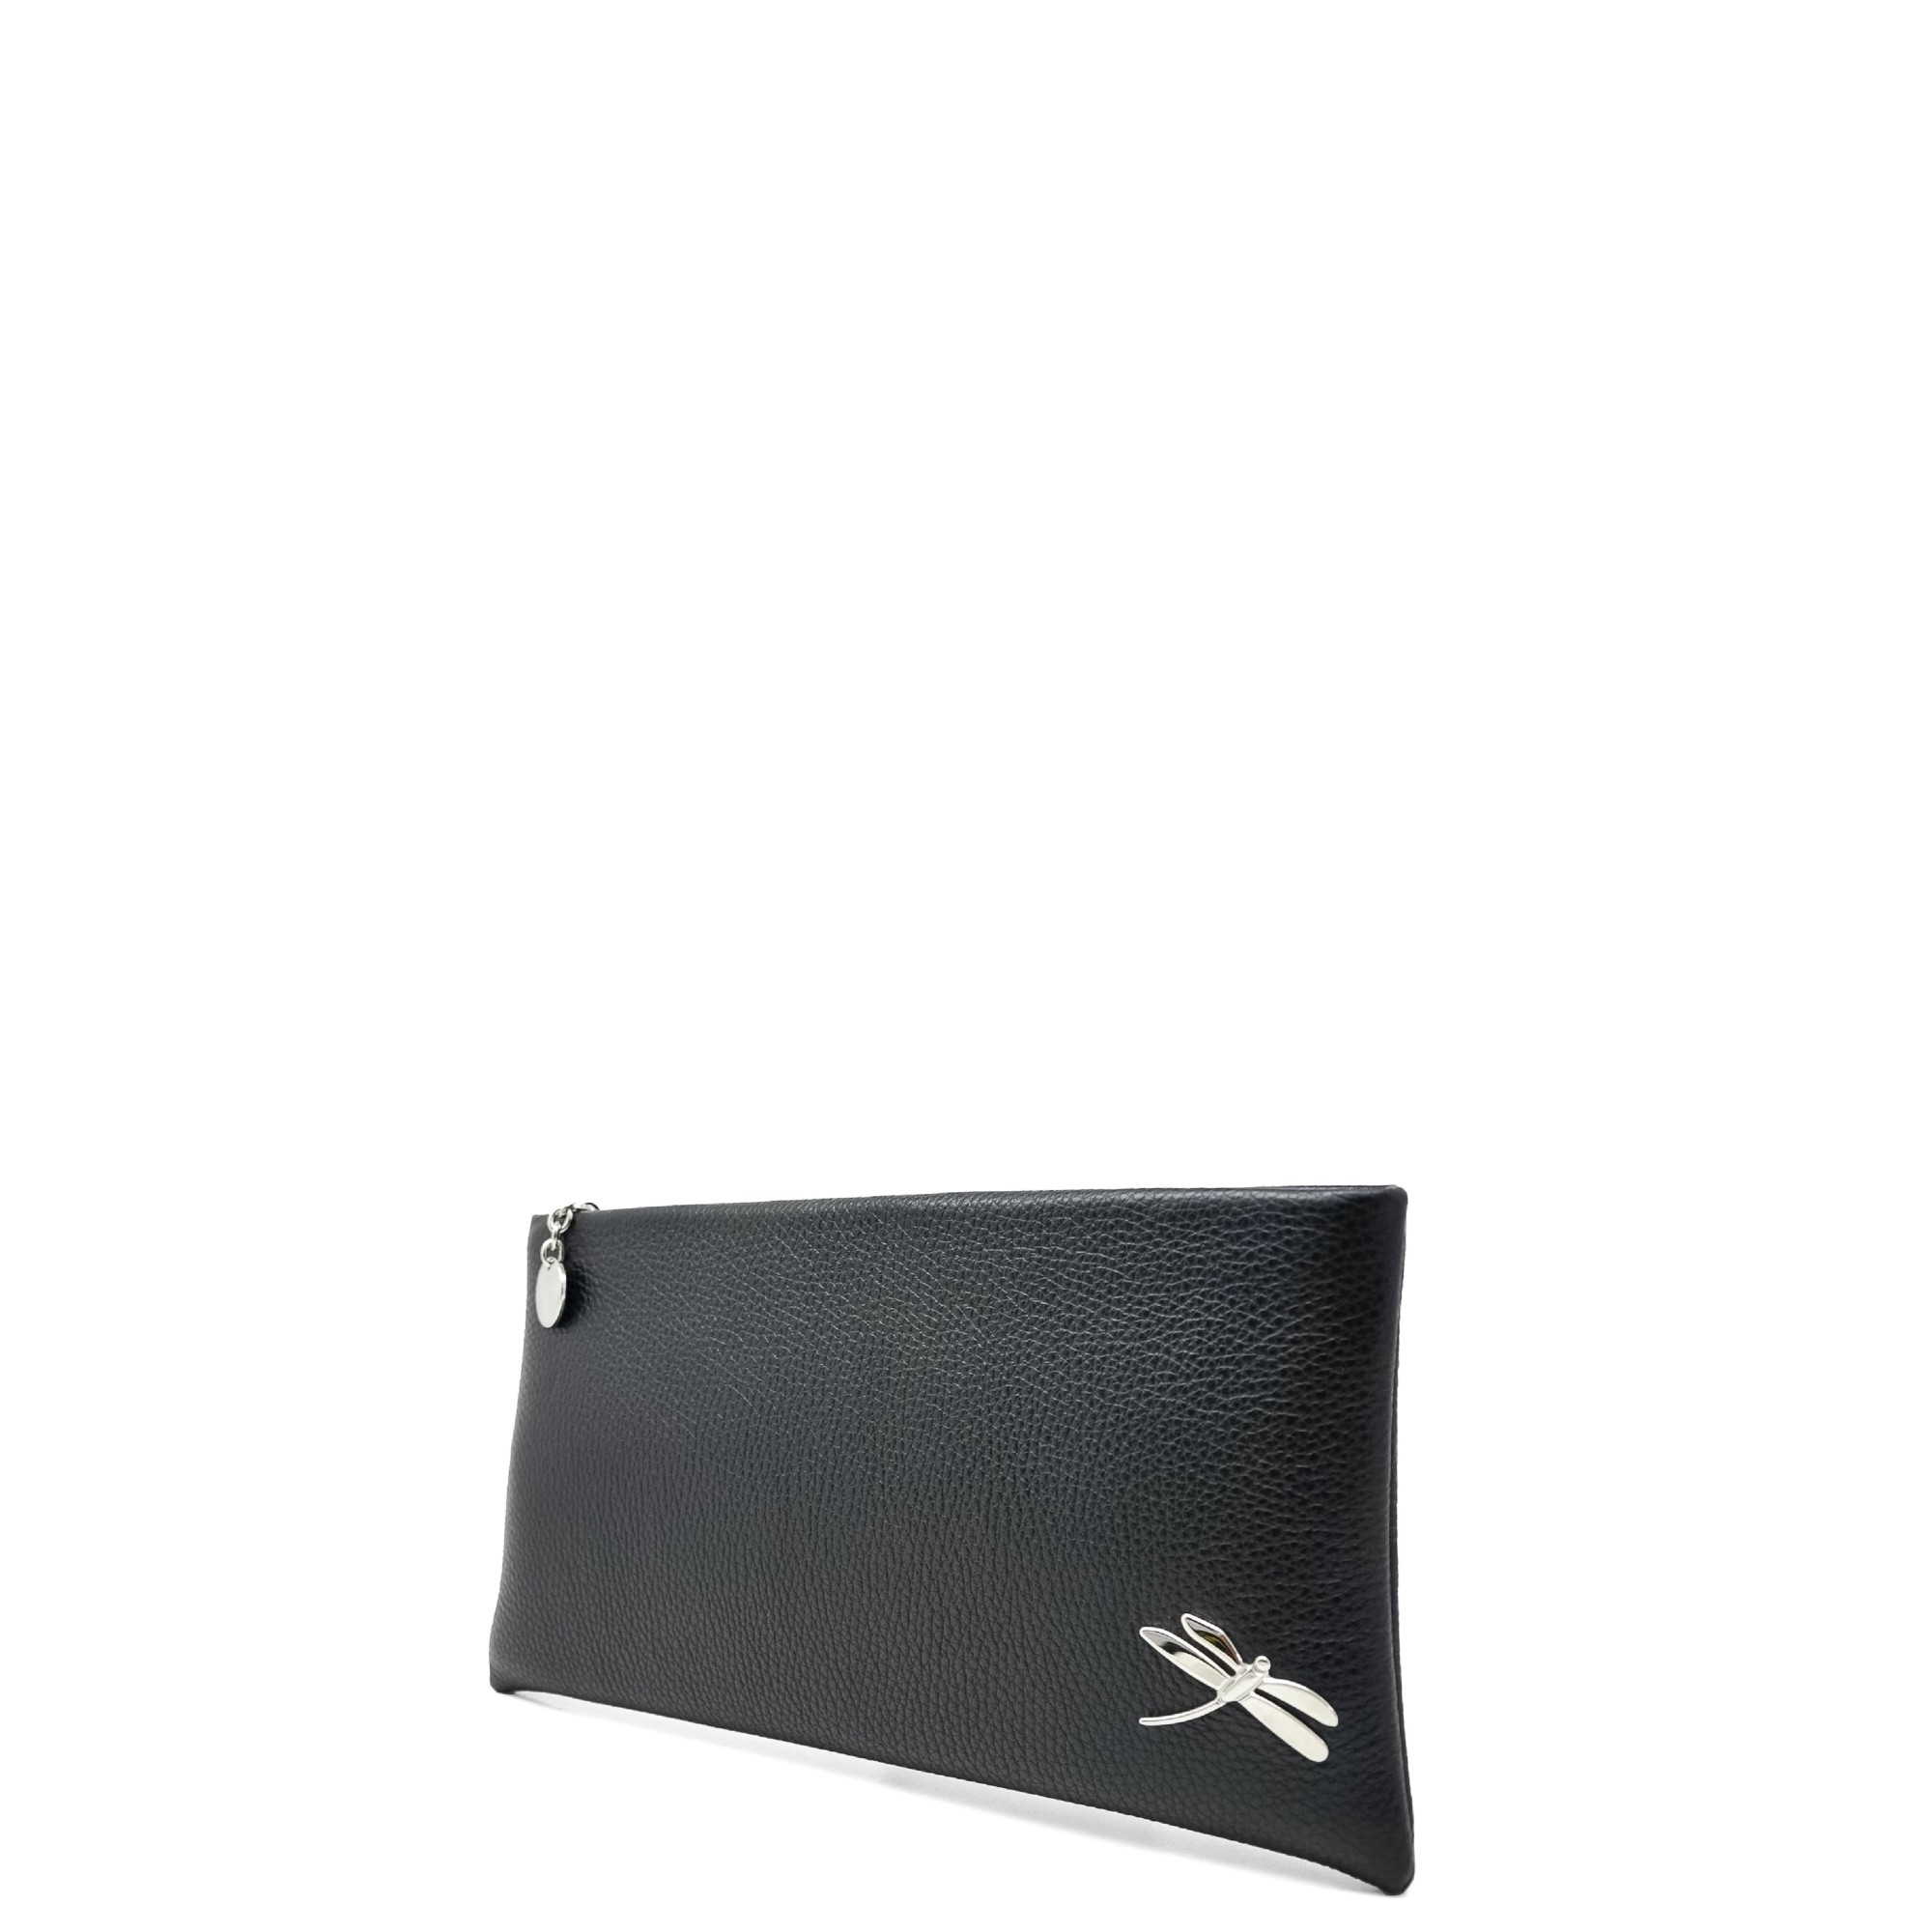 Minimalist Design Clutch Handbag with polished Italian details. Top zip closure, back hand strap, one interior zip pocket, one open slot. Soft leather lining.